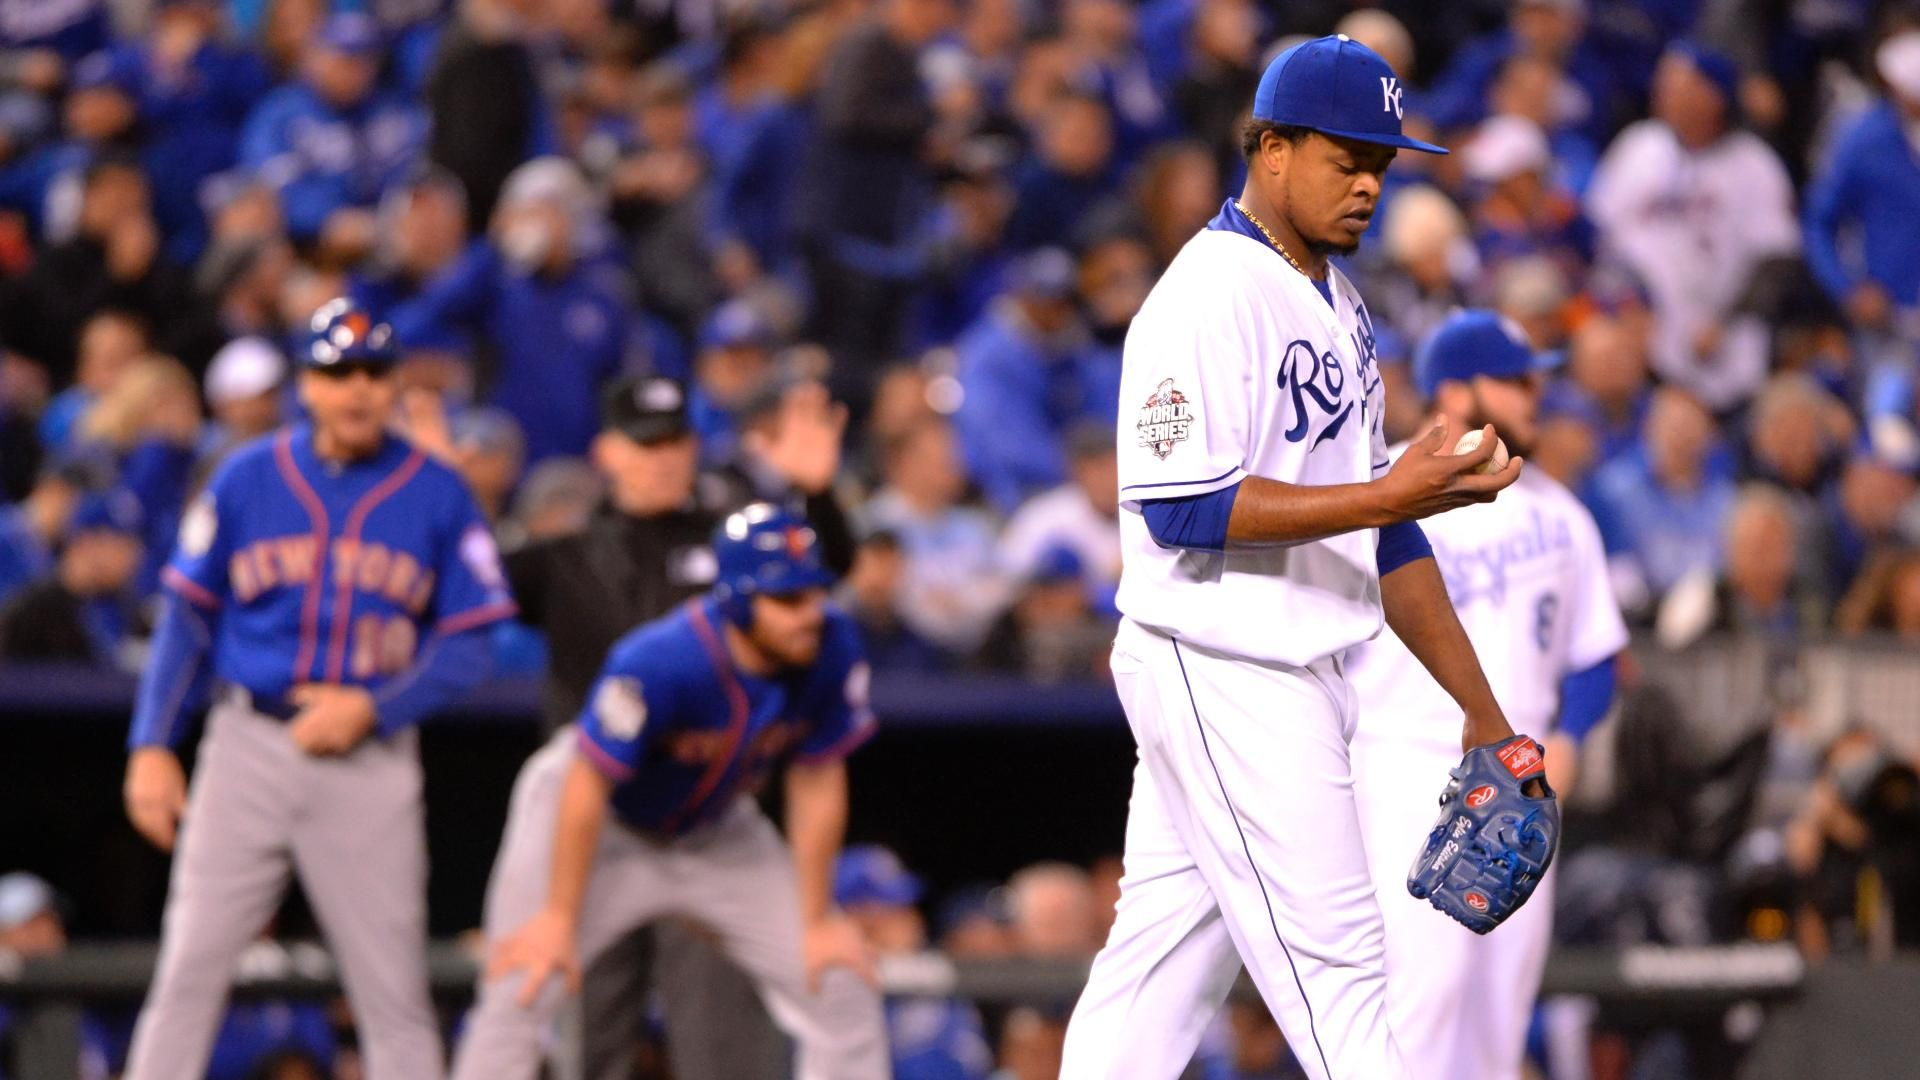 Joe Buck defends Fox's decision to not report Volquez's father's death